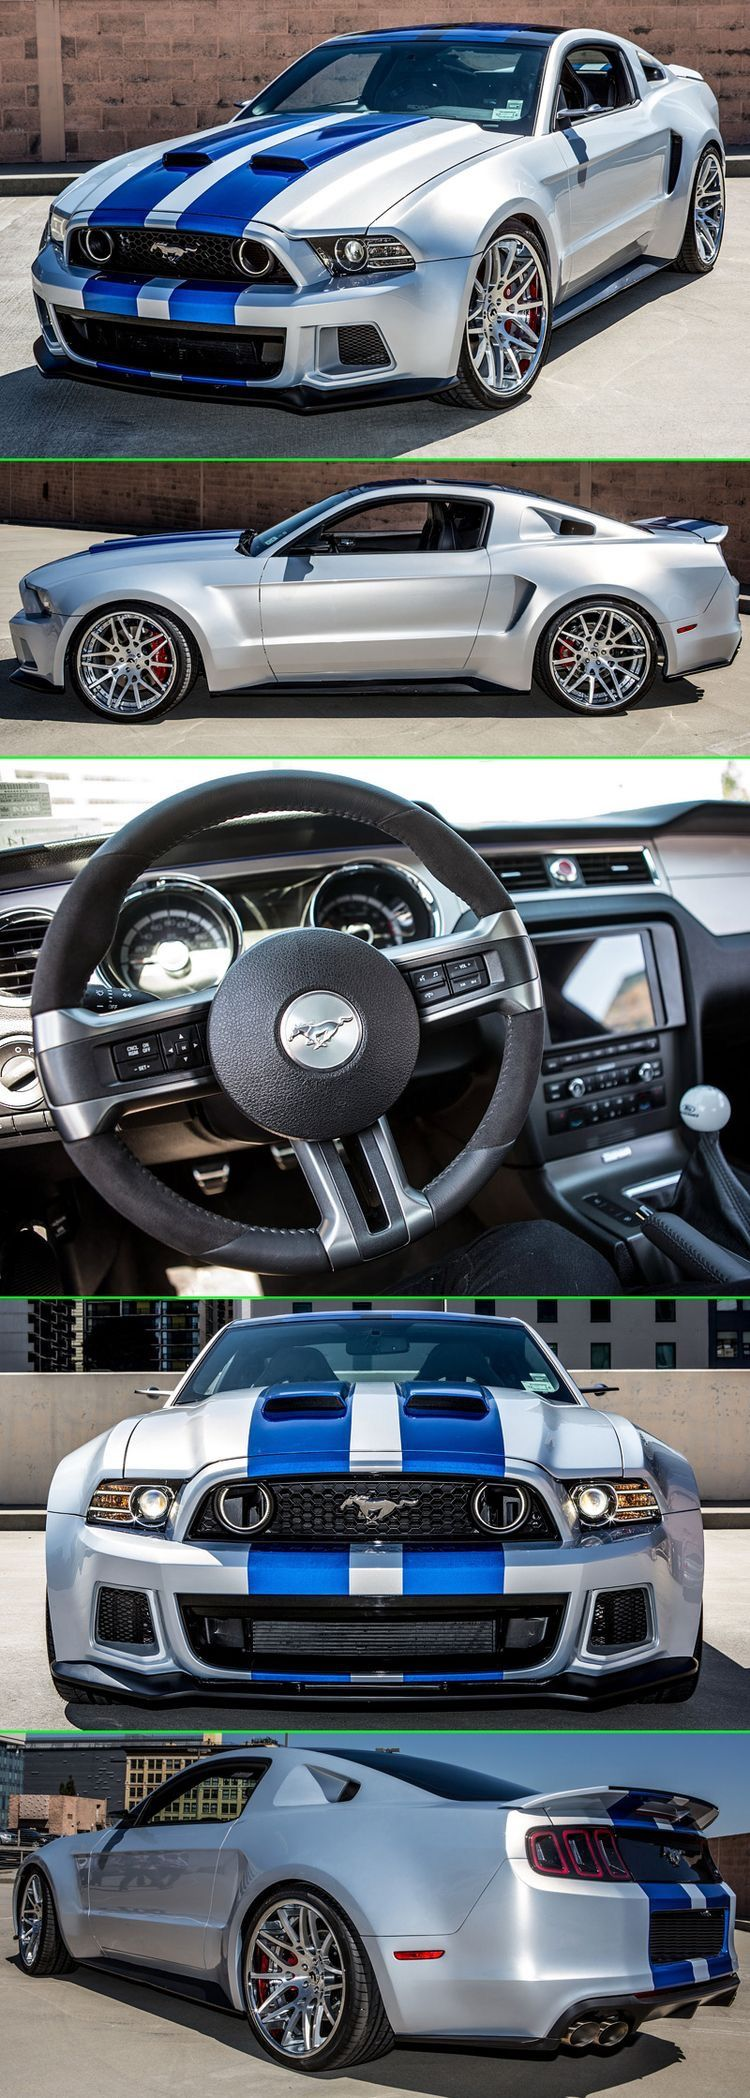 Interior Of Mustang Ford Mustang Mustang Shelby Mustang Cars